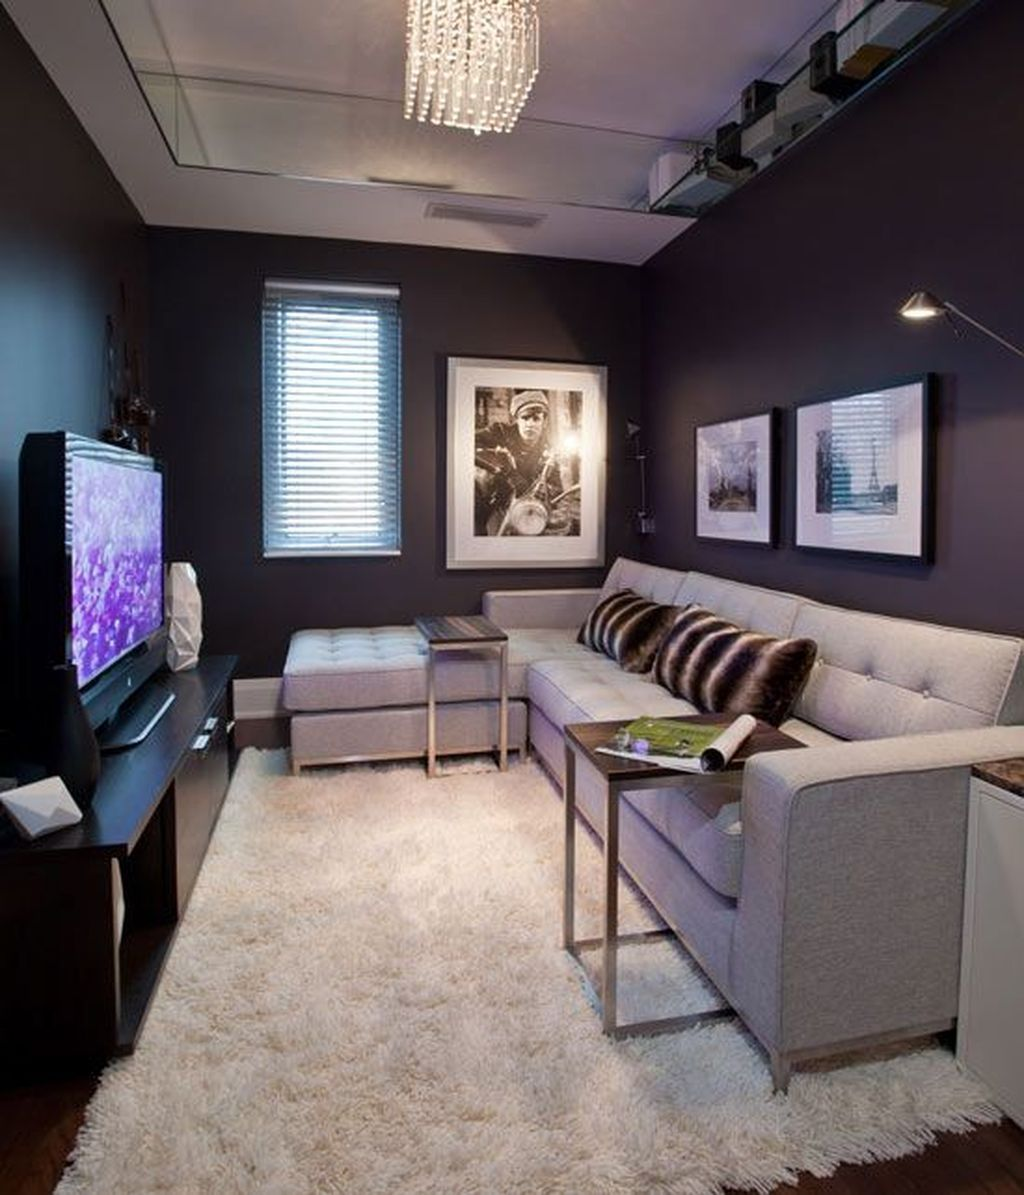 30 Fashionable Living Room Decoration Ideas On A Budget Narrow Living Room Small Living Room Layout Small Room Design